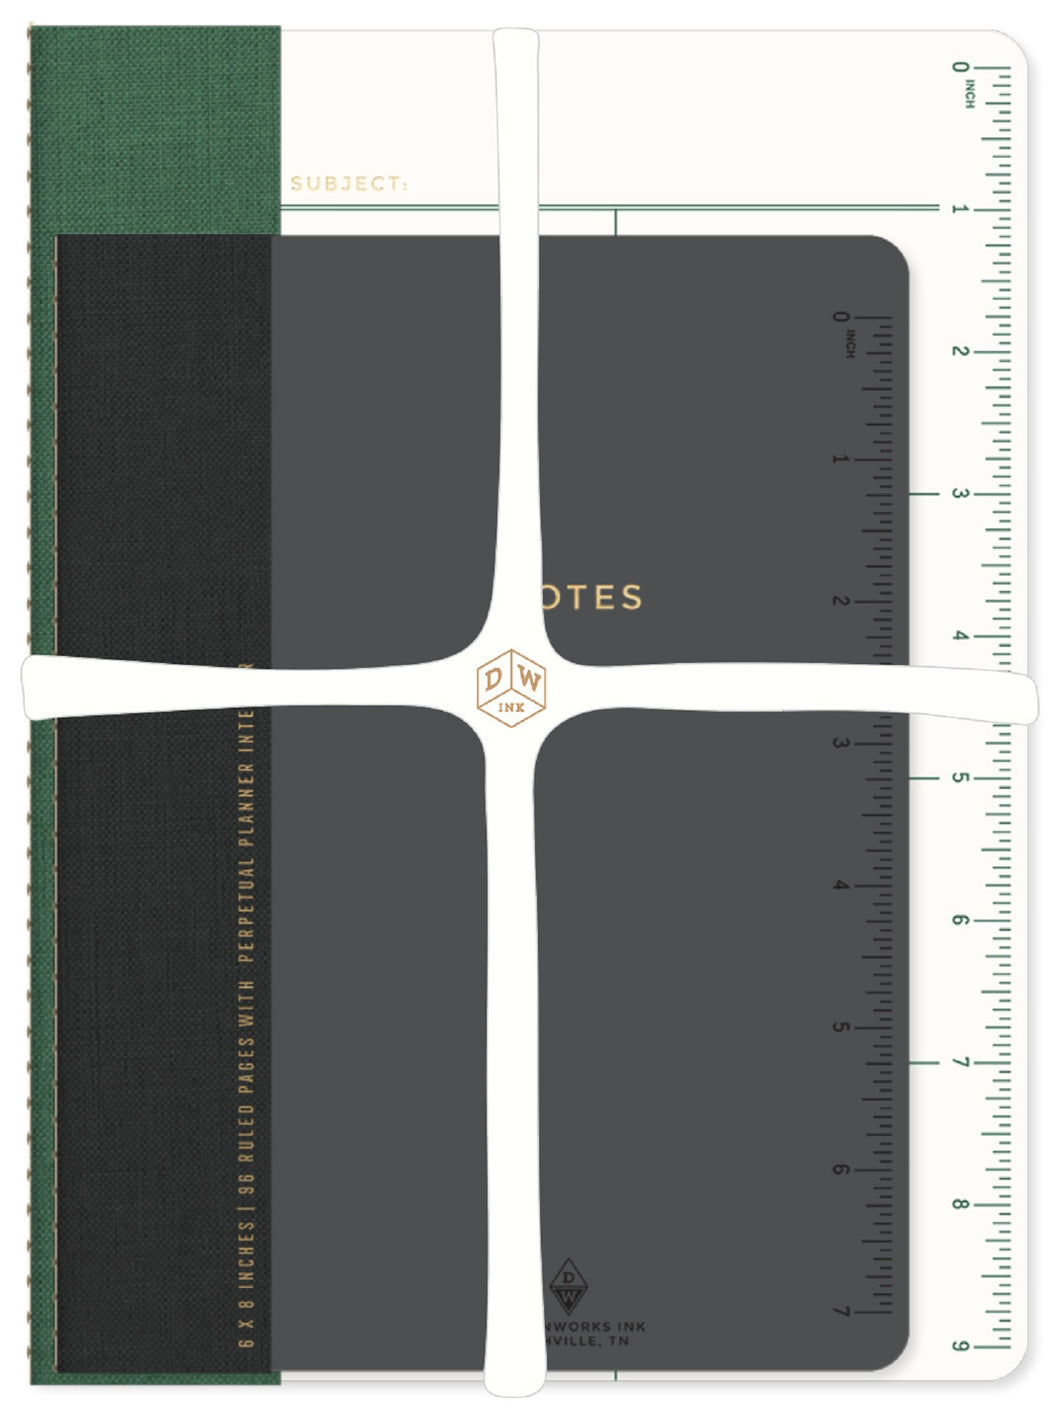 Emerald & Black Linen Grid / 2-Pack Notebook - Undated